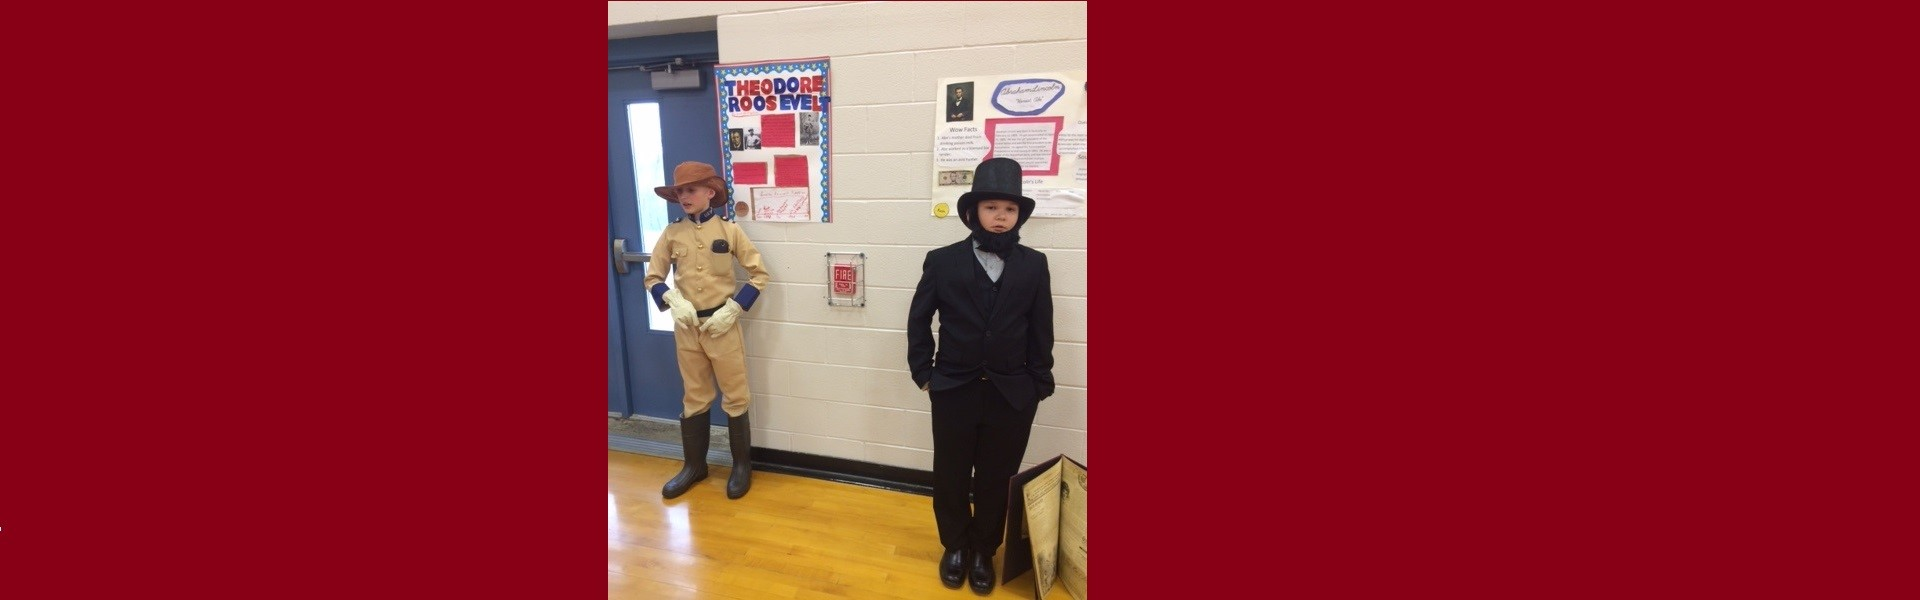 Students dressed as Roosevelt and Lincoln